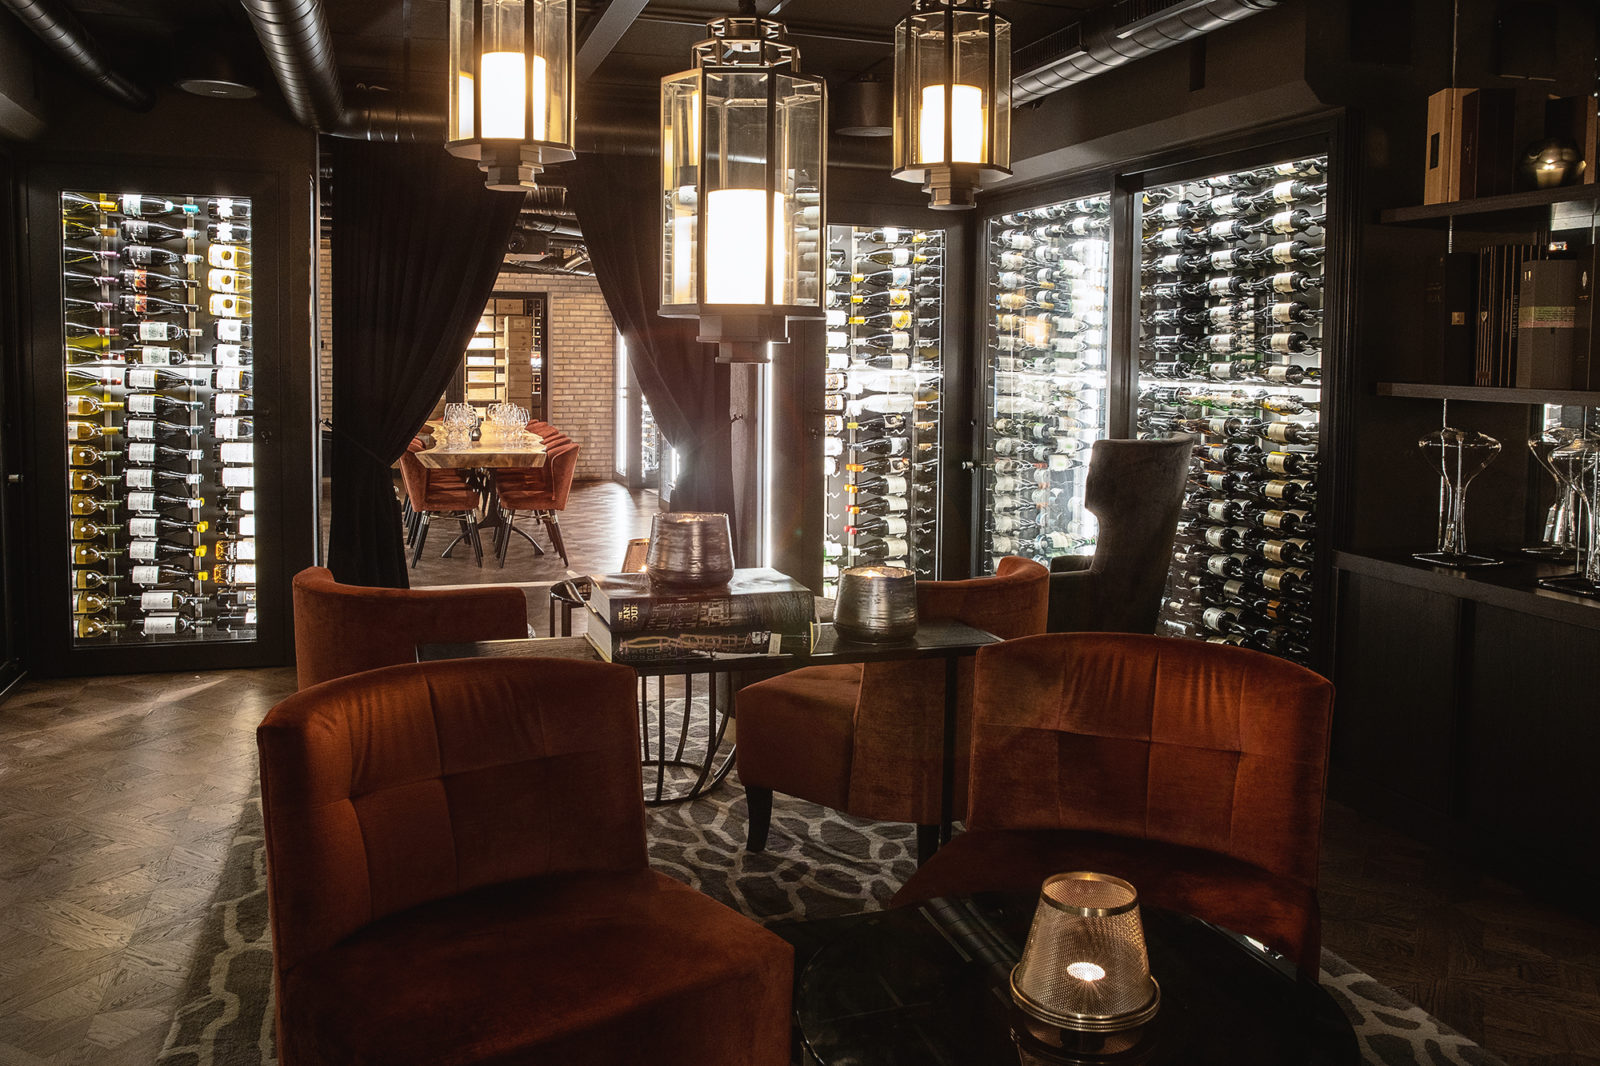 Britannia Hotel's open wine cellar, Vinbaren, lined by 10,000 of the world's best bottles of wine.